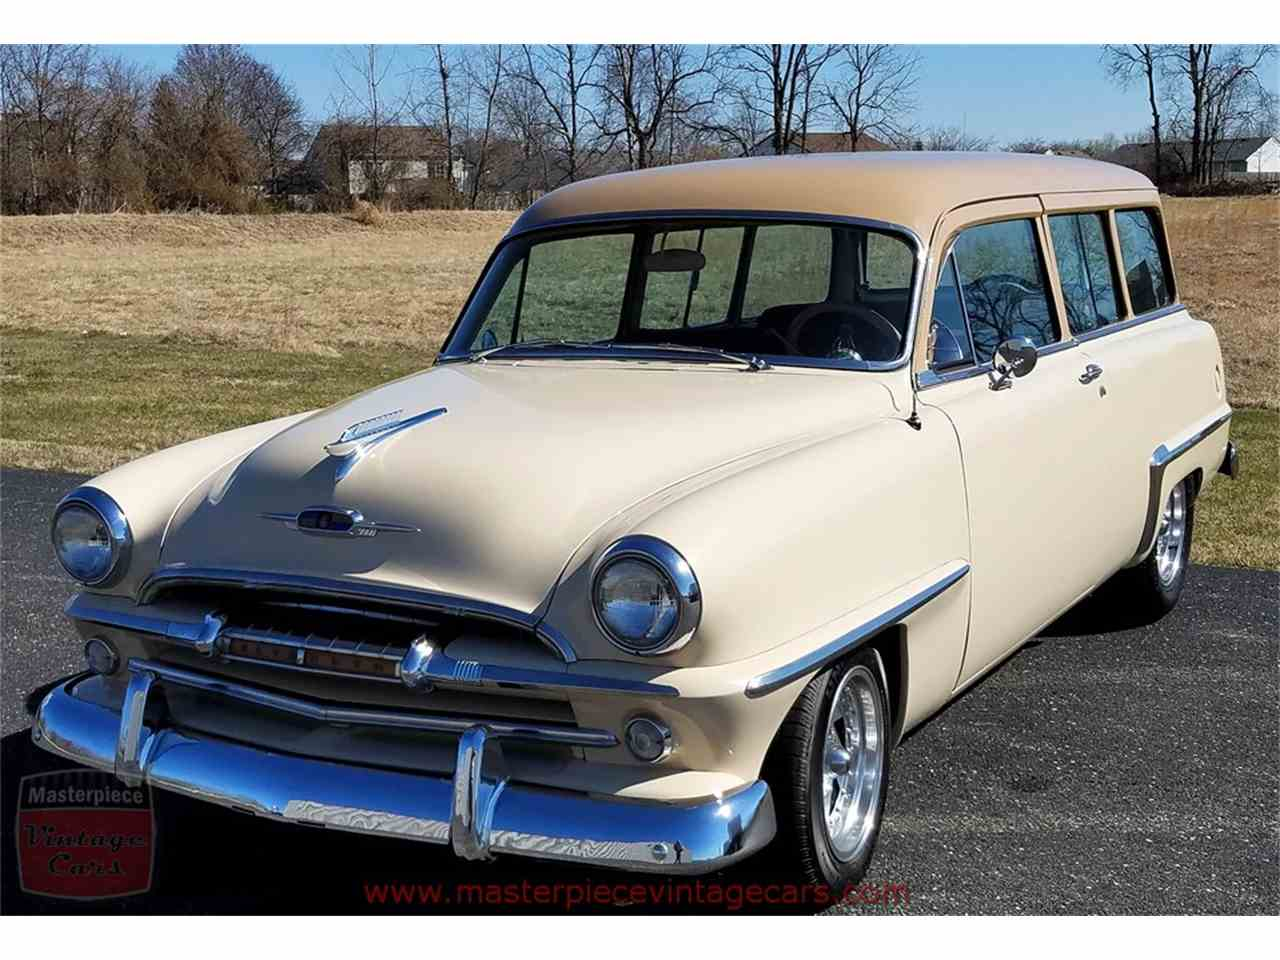 Large Picture of Classic '54 Plaza Suburban located in Whiteland Indiana - $34,900.00 Offered by Masterpiece Vintage Cars - KV49